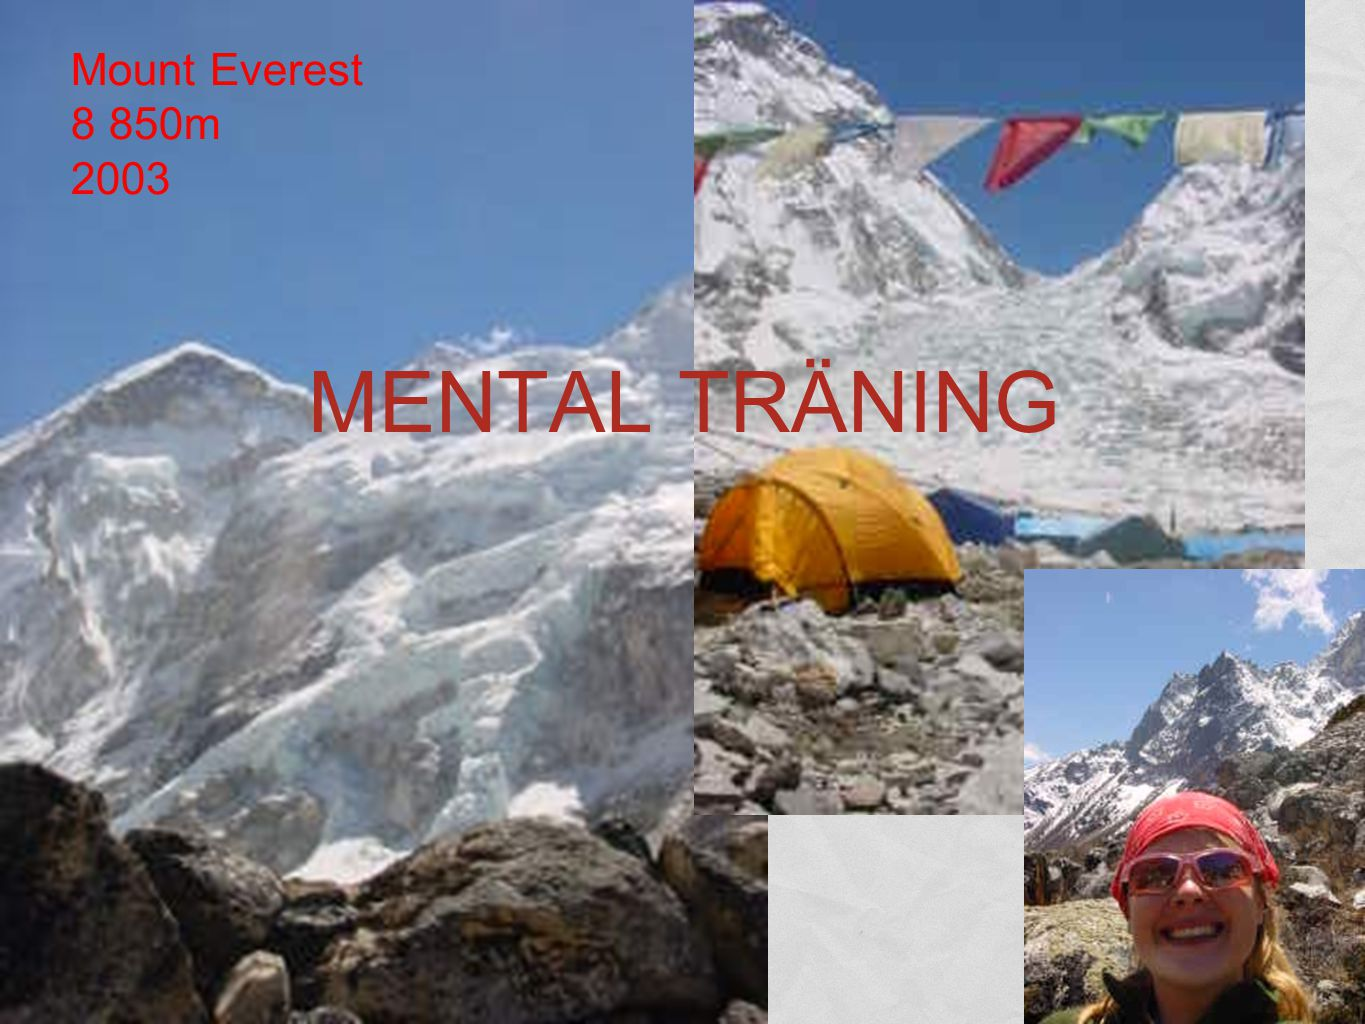 Mount Everest 8 850m 2003 MENTAL TRÄNING